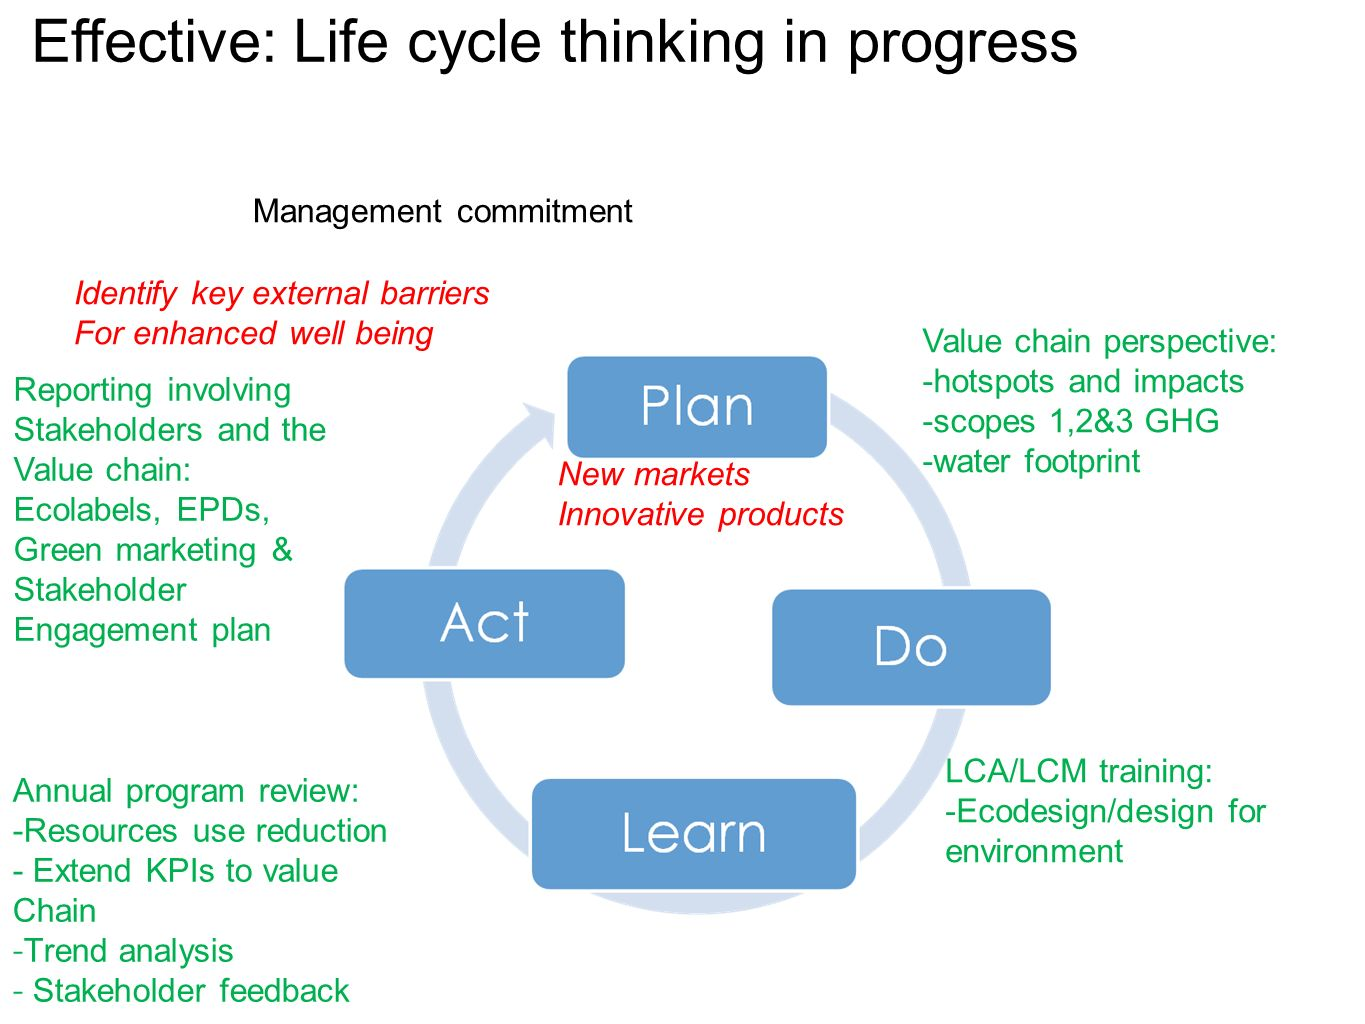 Effective: Life cycle thinking in progress